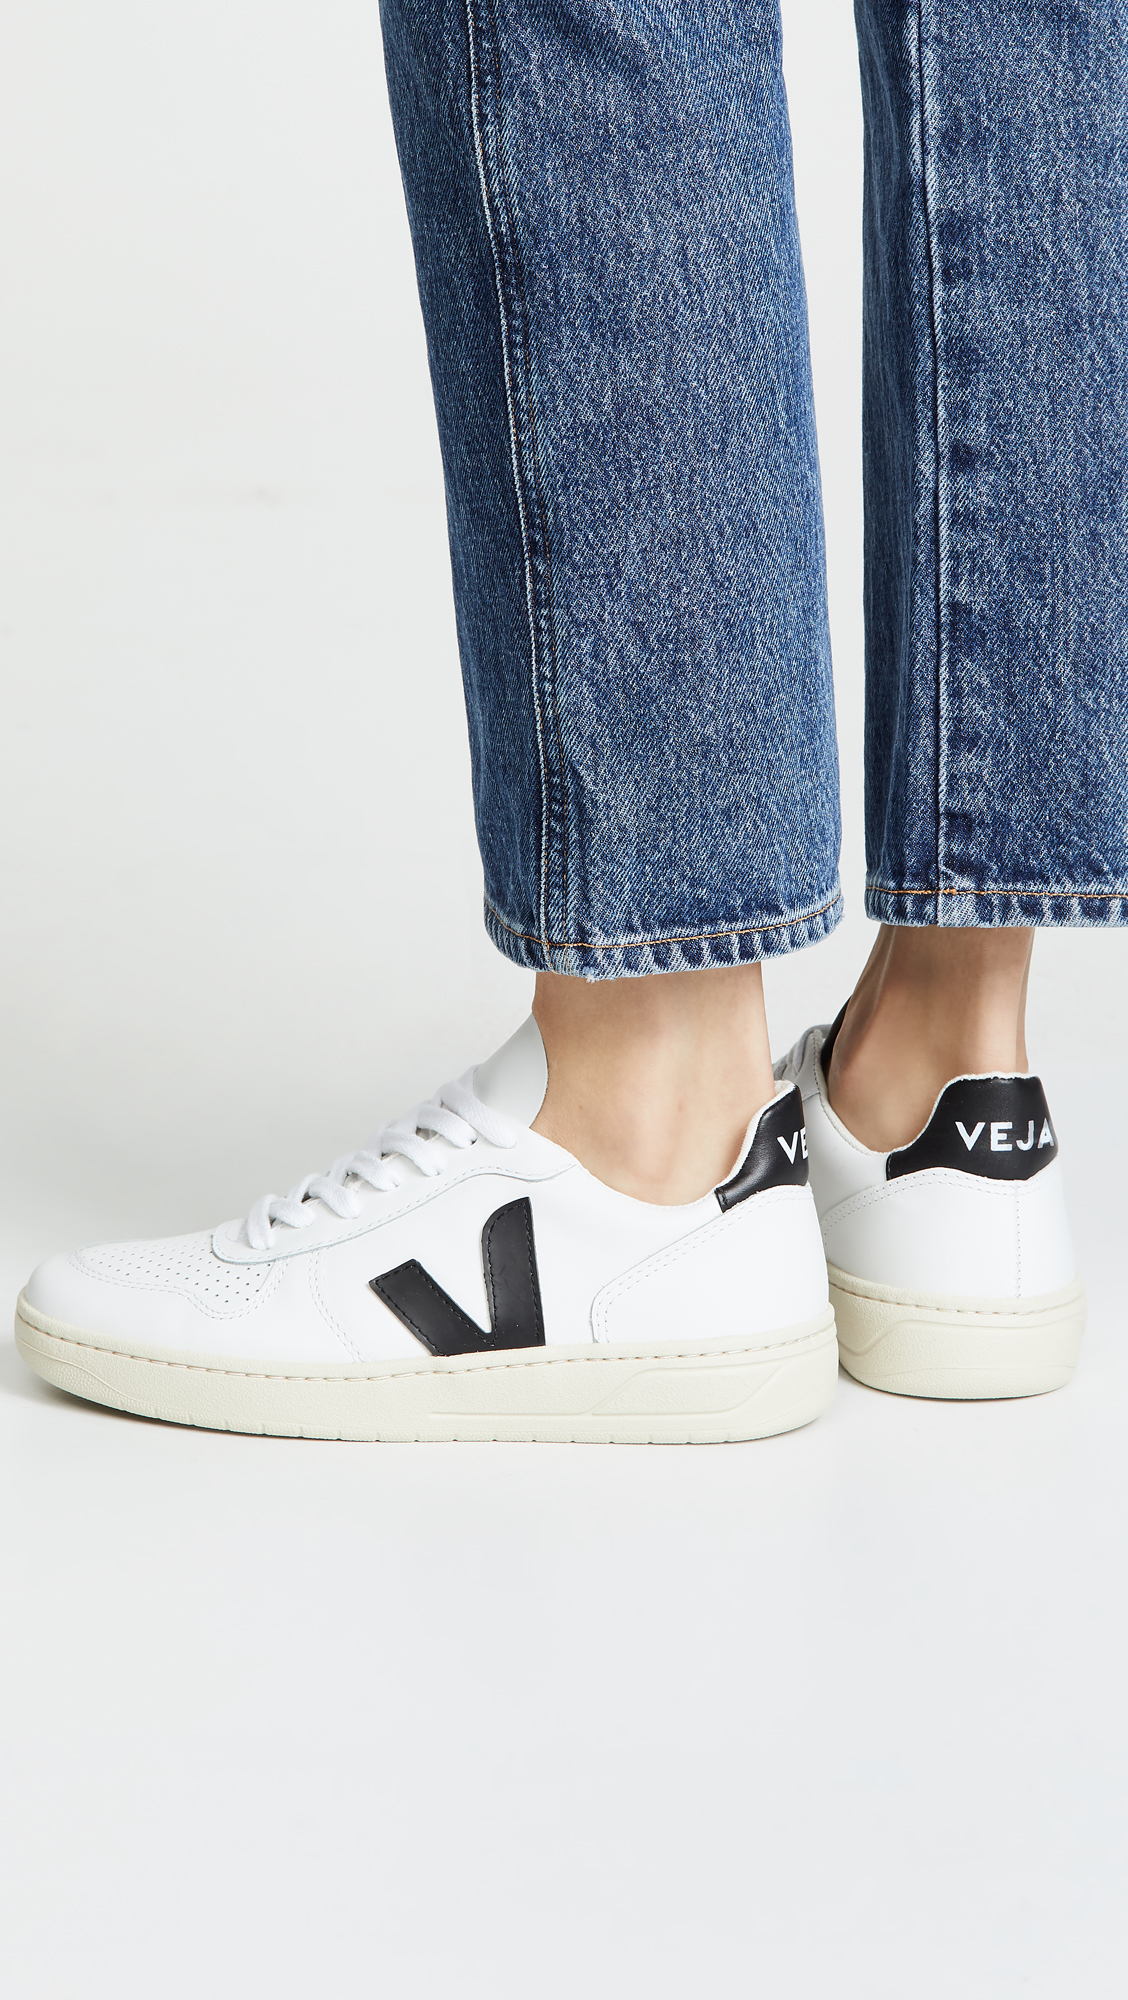 veja lace up sneakers purchase 6629a 9e20b